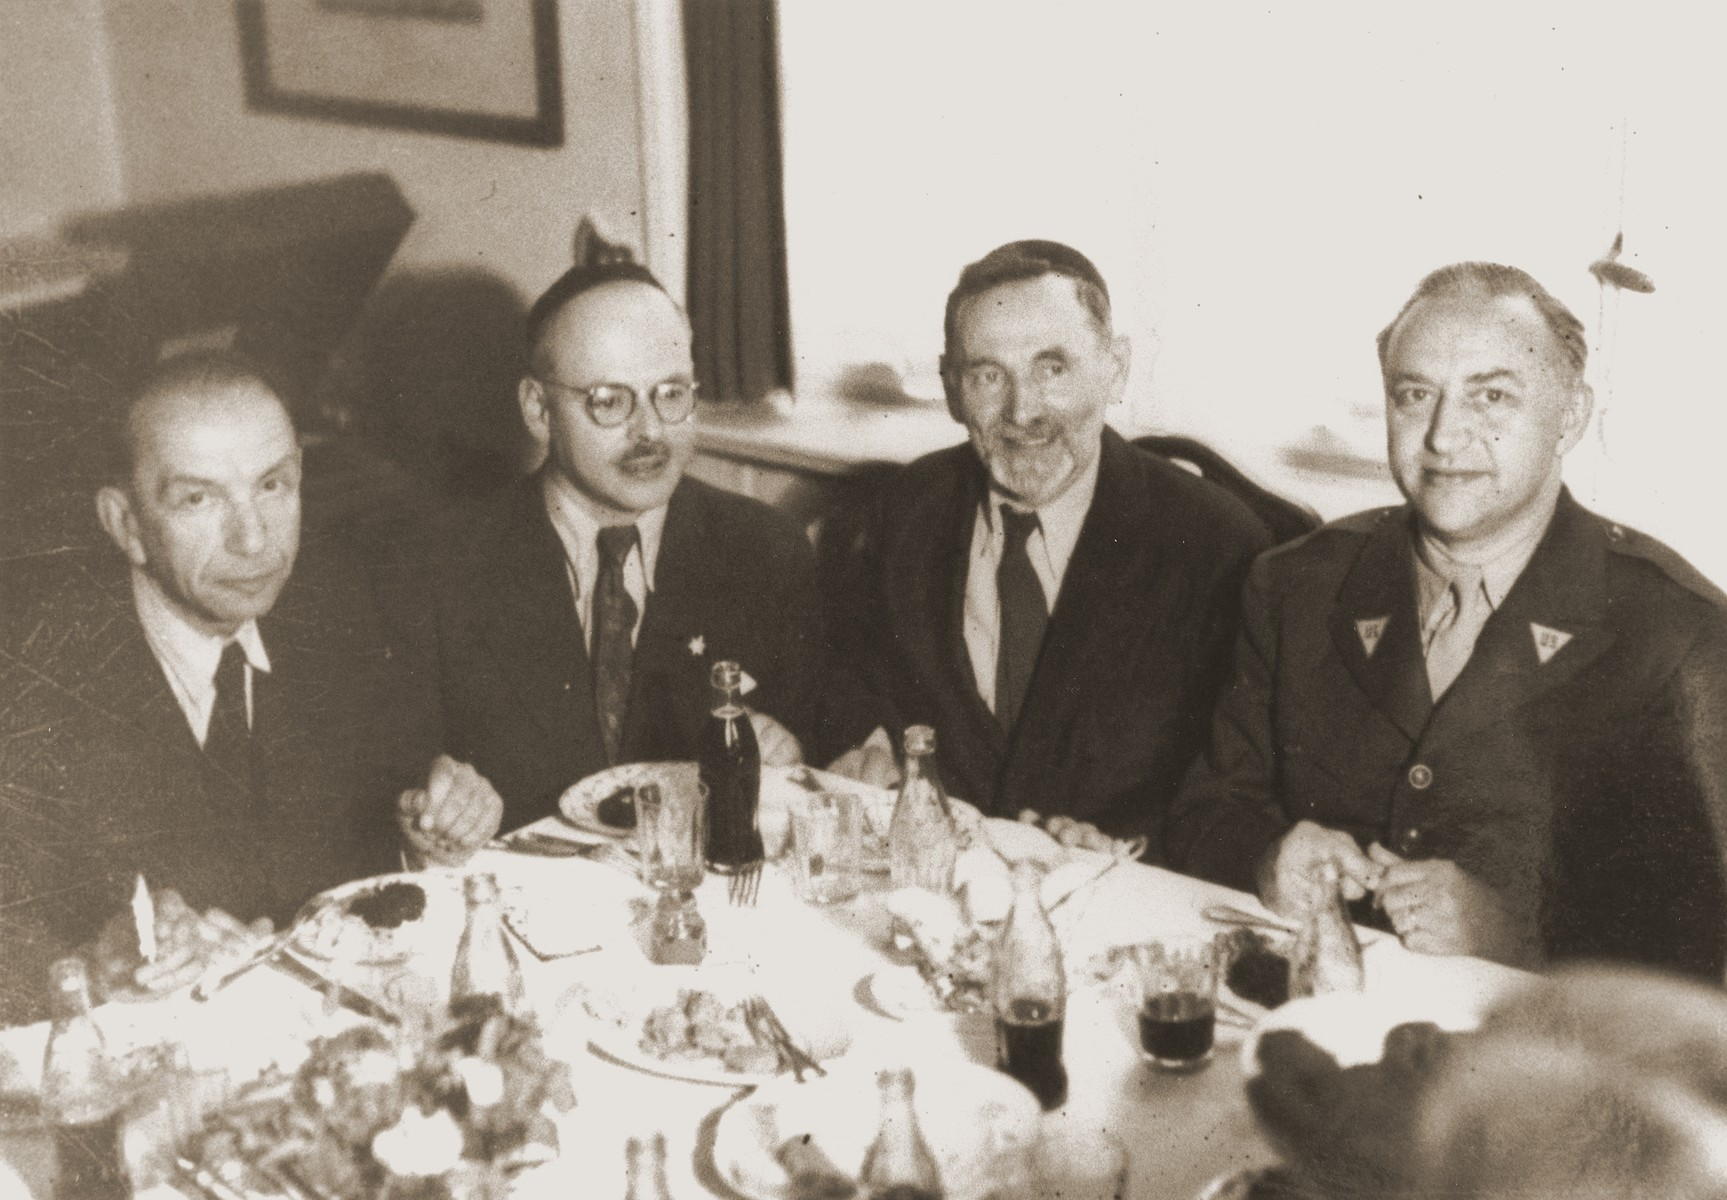 Rabbi Philip Bernstein (right), adviser on Jewish affairs to the U.S. Army commander in Europe, dines with local Jewish leaders in Berlin.  Also pictured is Erich Nelhaus (second from the left), head of the Berlin Jewish community.